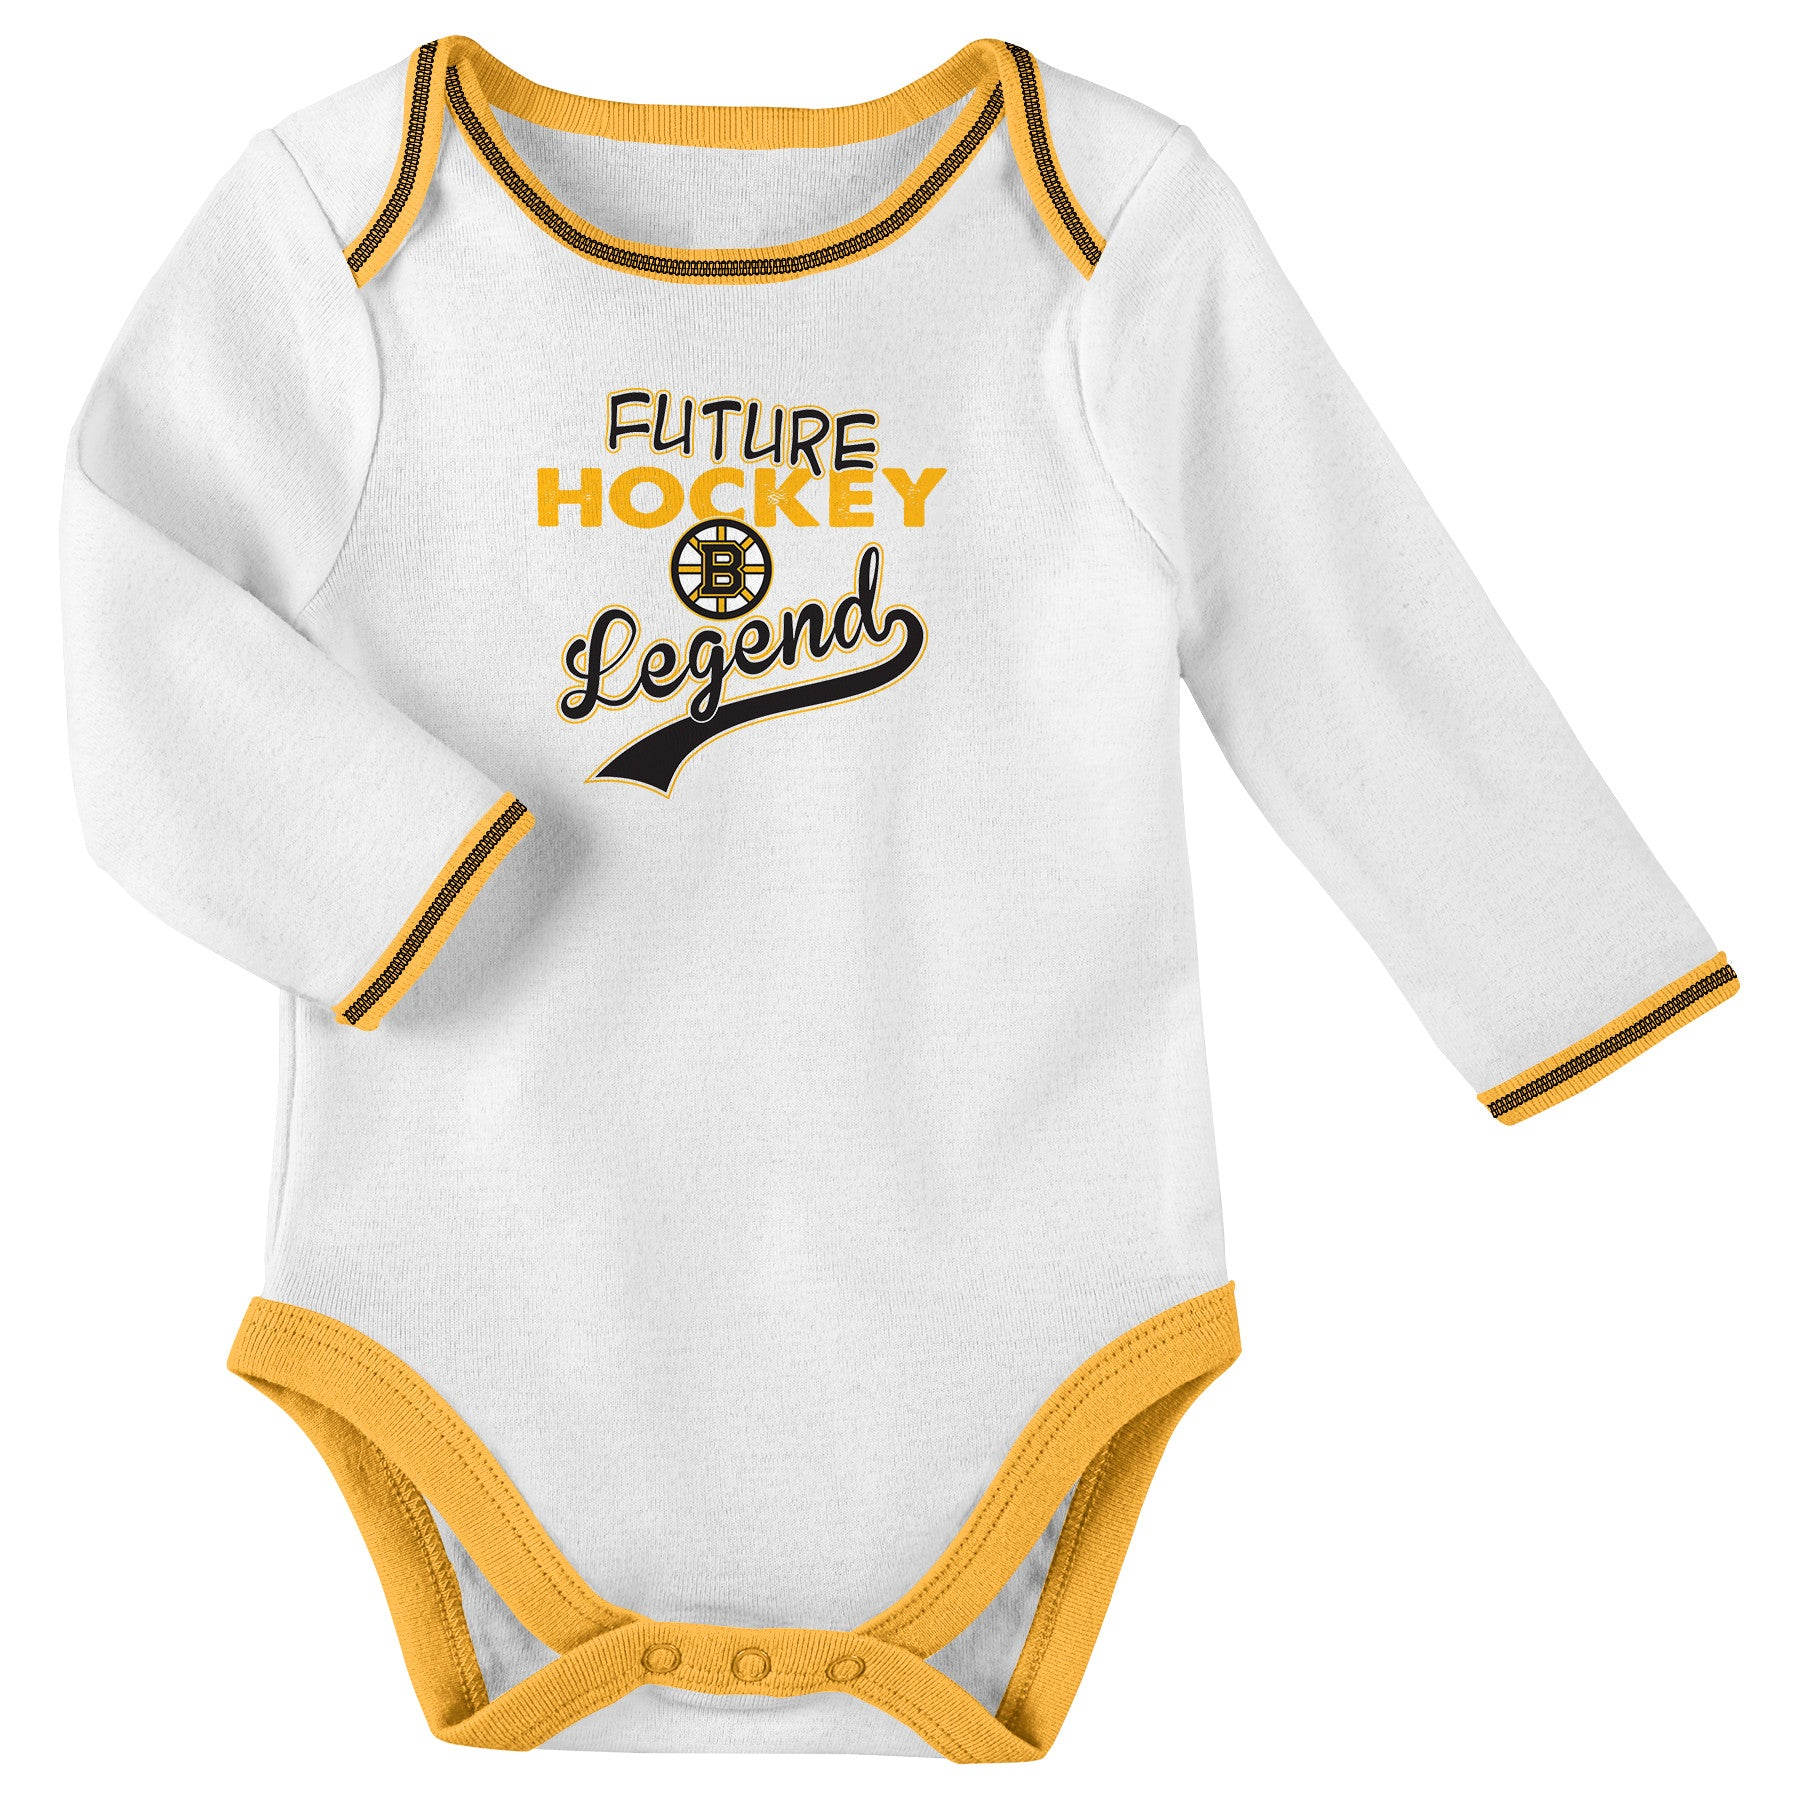 5e2e47598 Boston Bruins Future Hockey Legend 3 Piece Outfit – babyfans